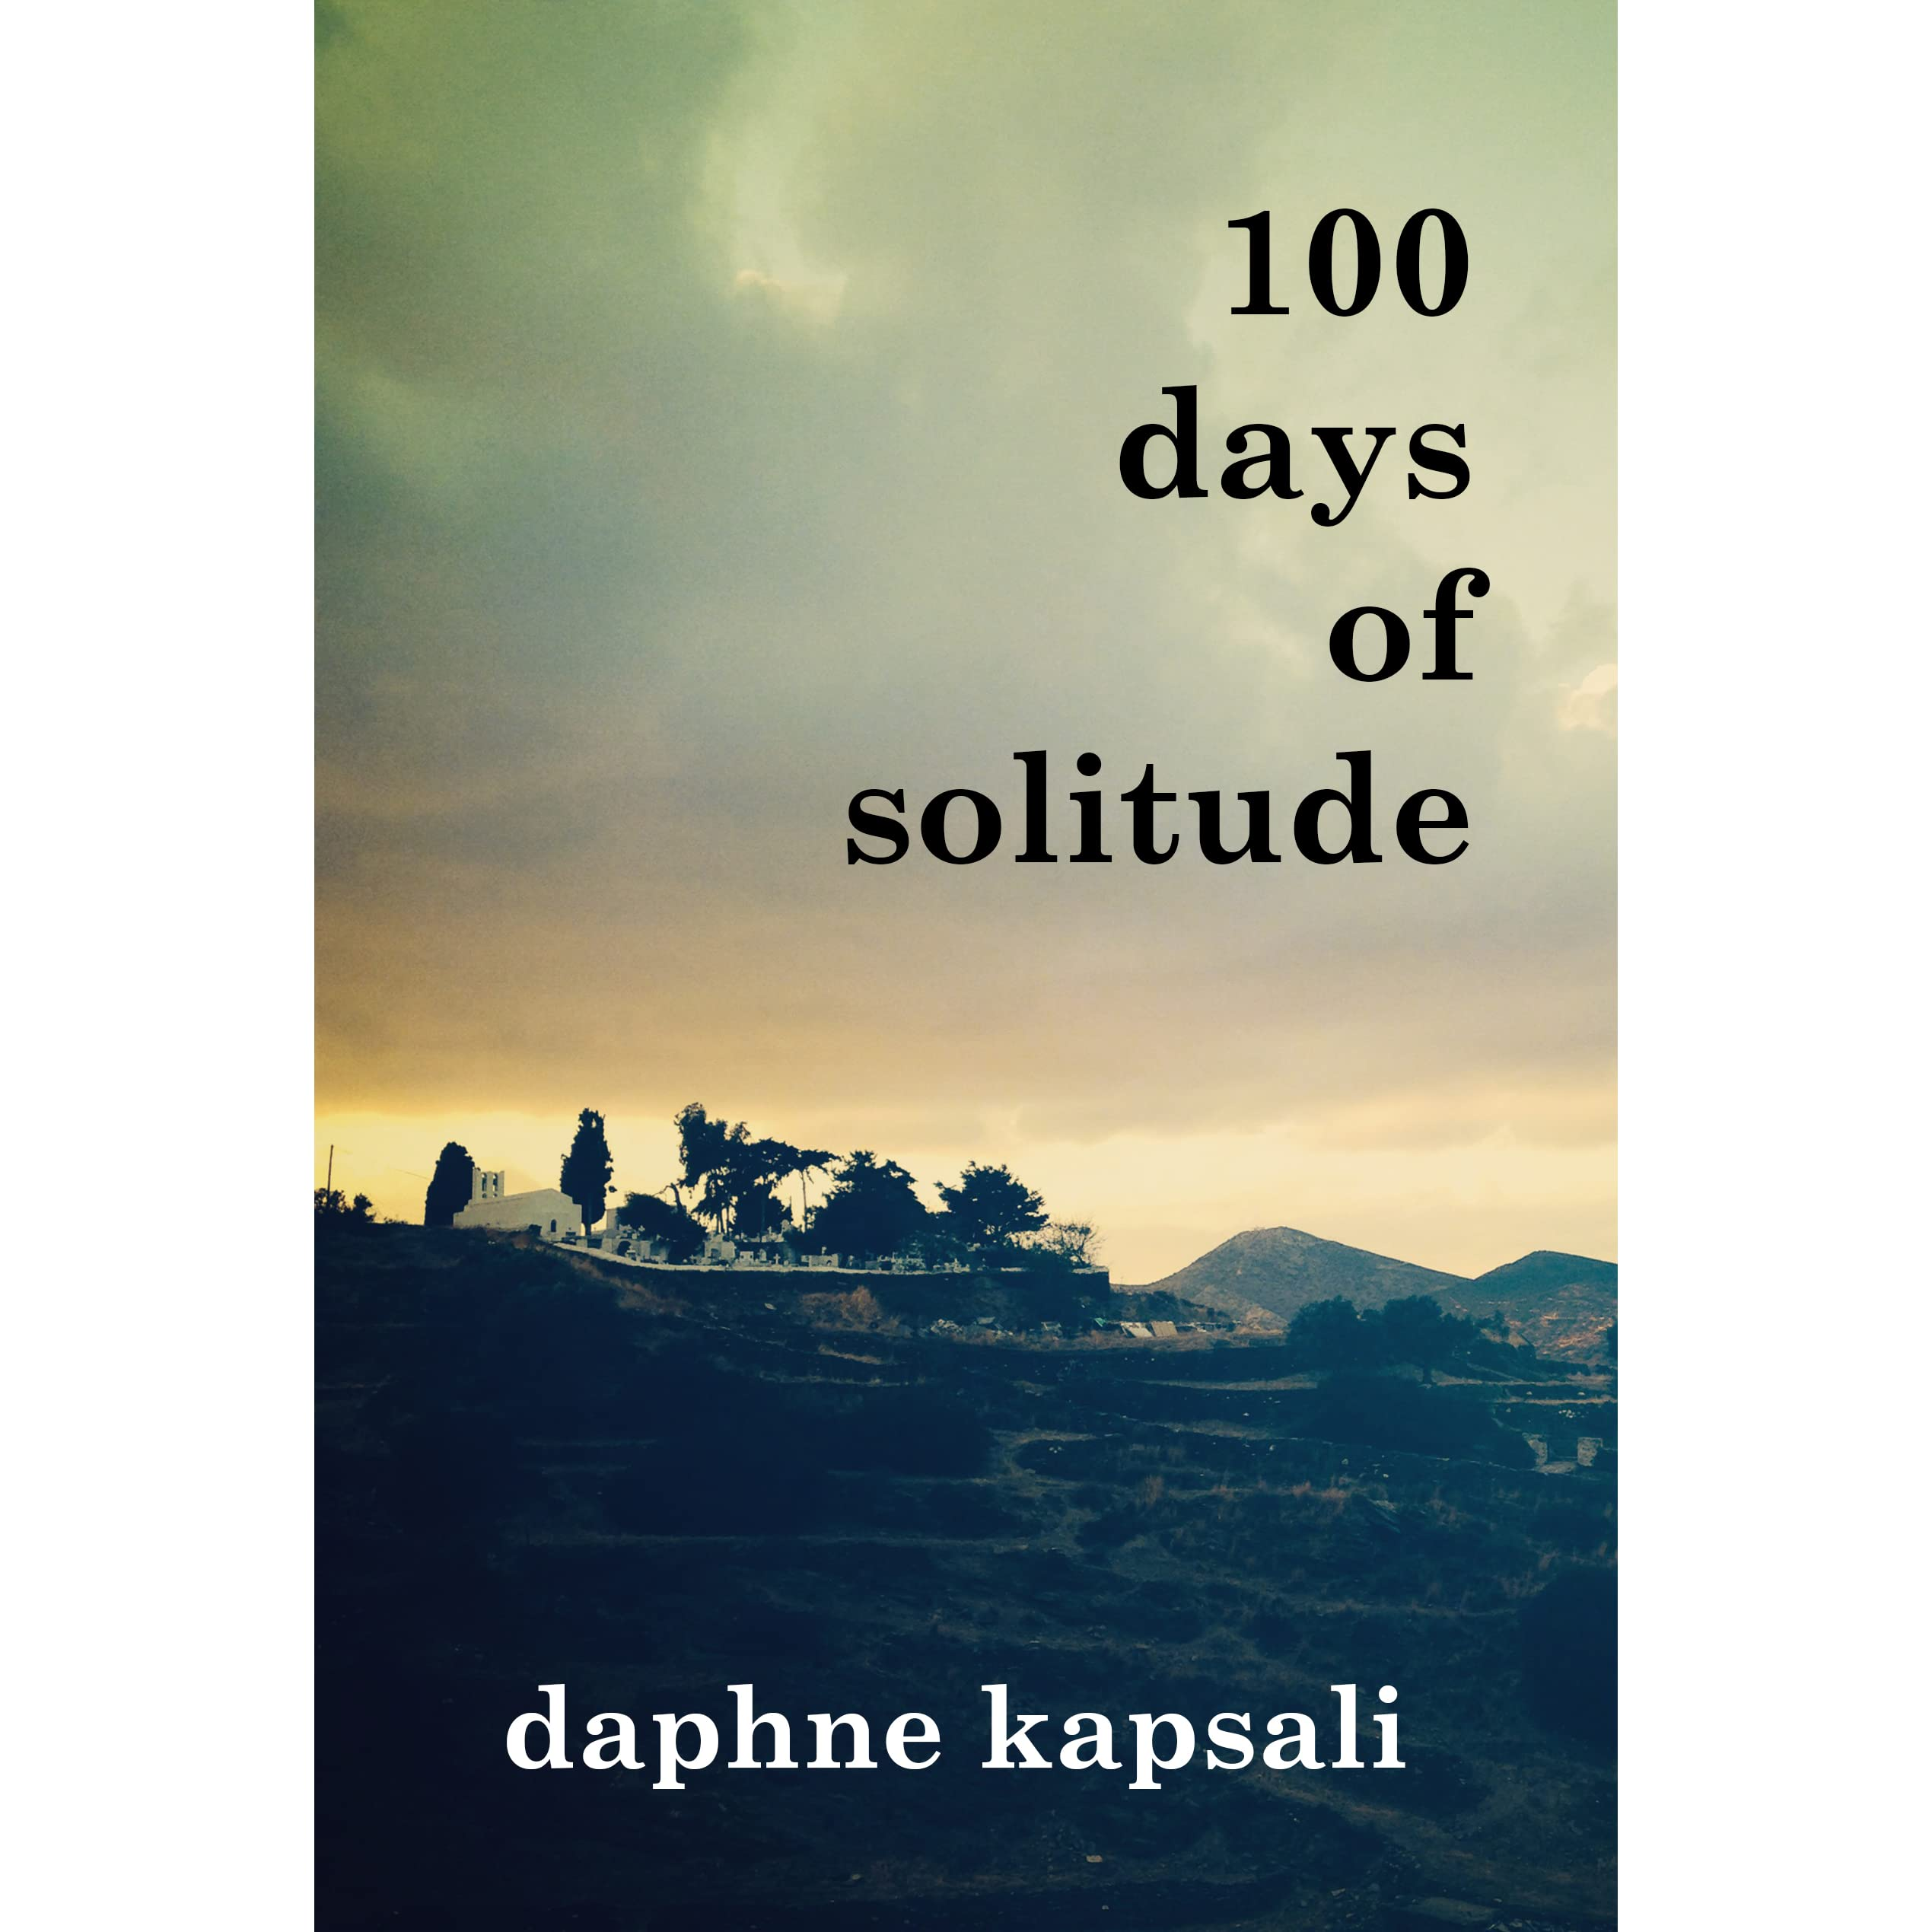 100 days of solitude by daphne kapsali reviews discussion 100 days of solitude by daphne kapsali reviews discussion bookclubs lists